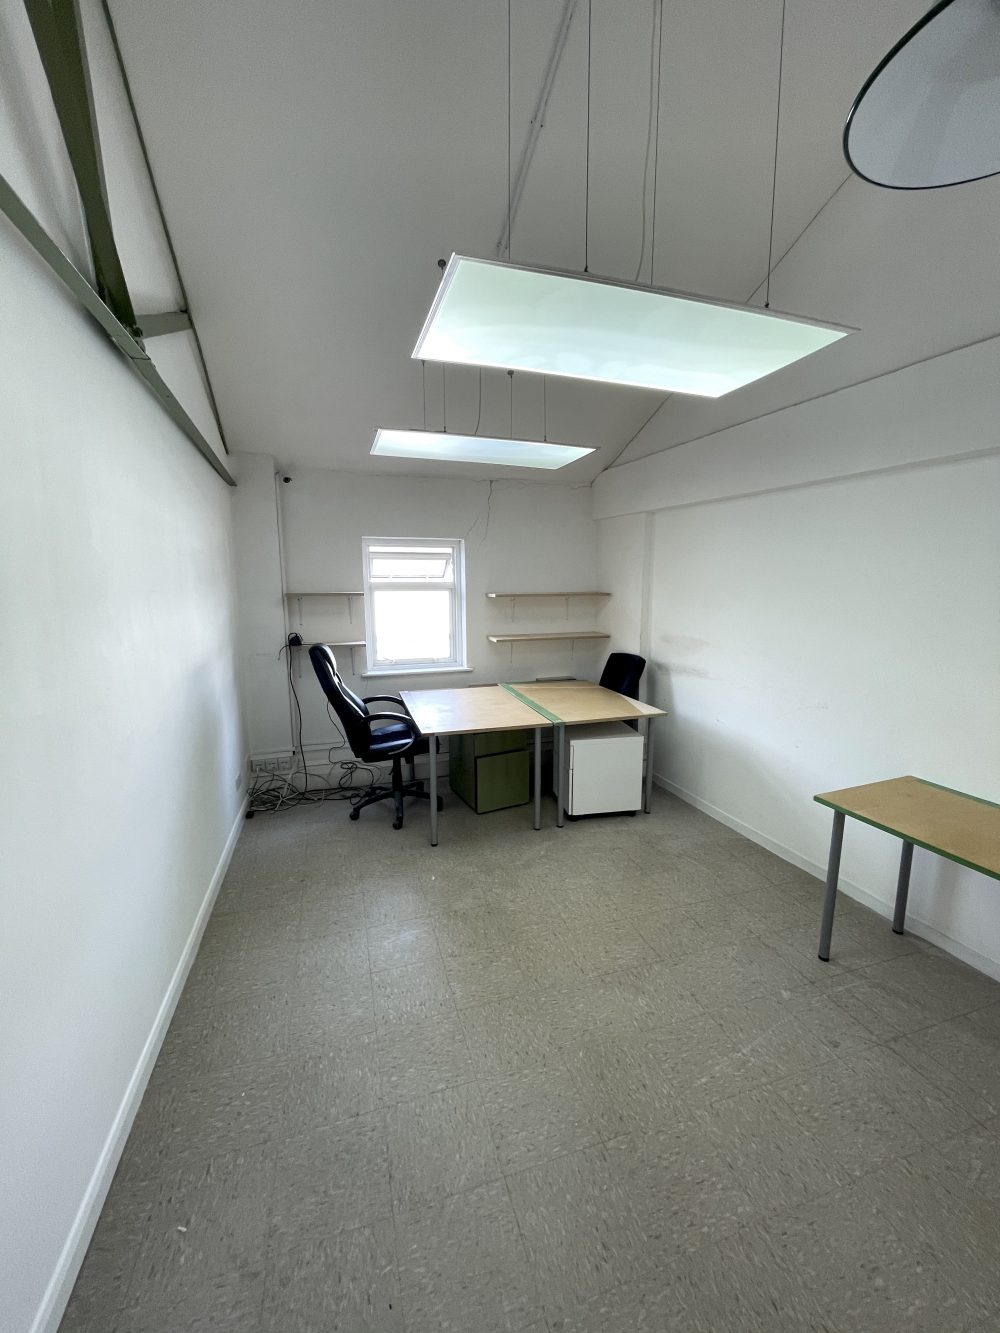 Studio Available to rent in N16 Green Lane Pic8